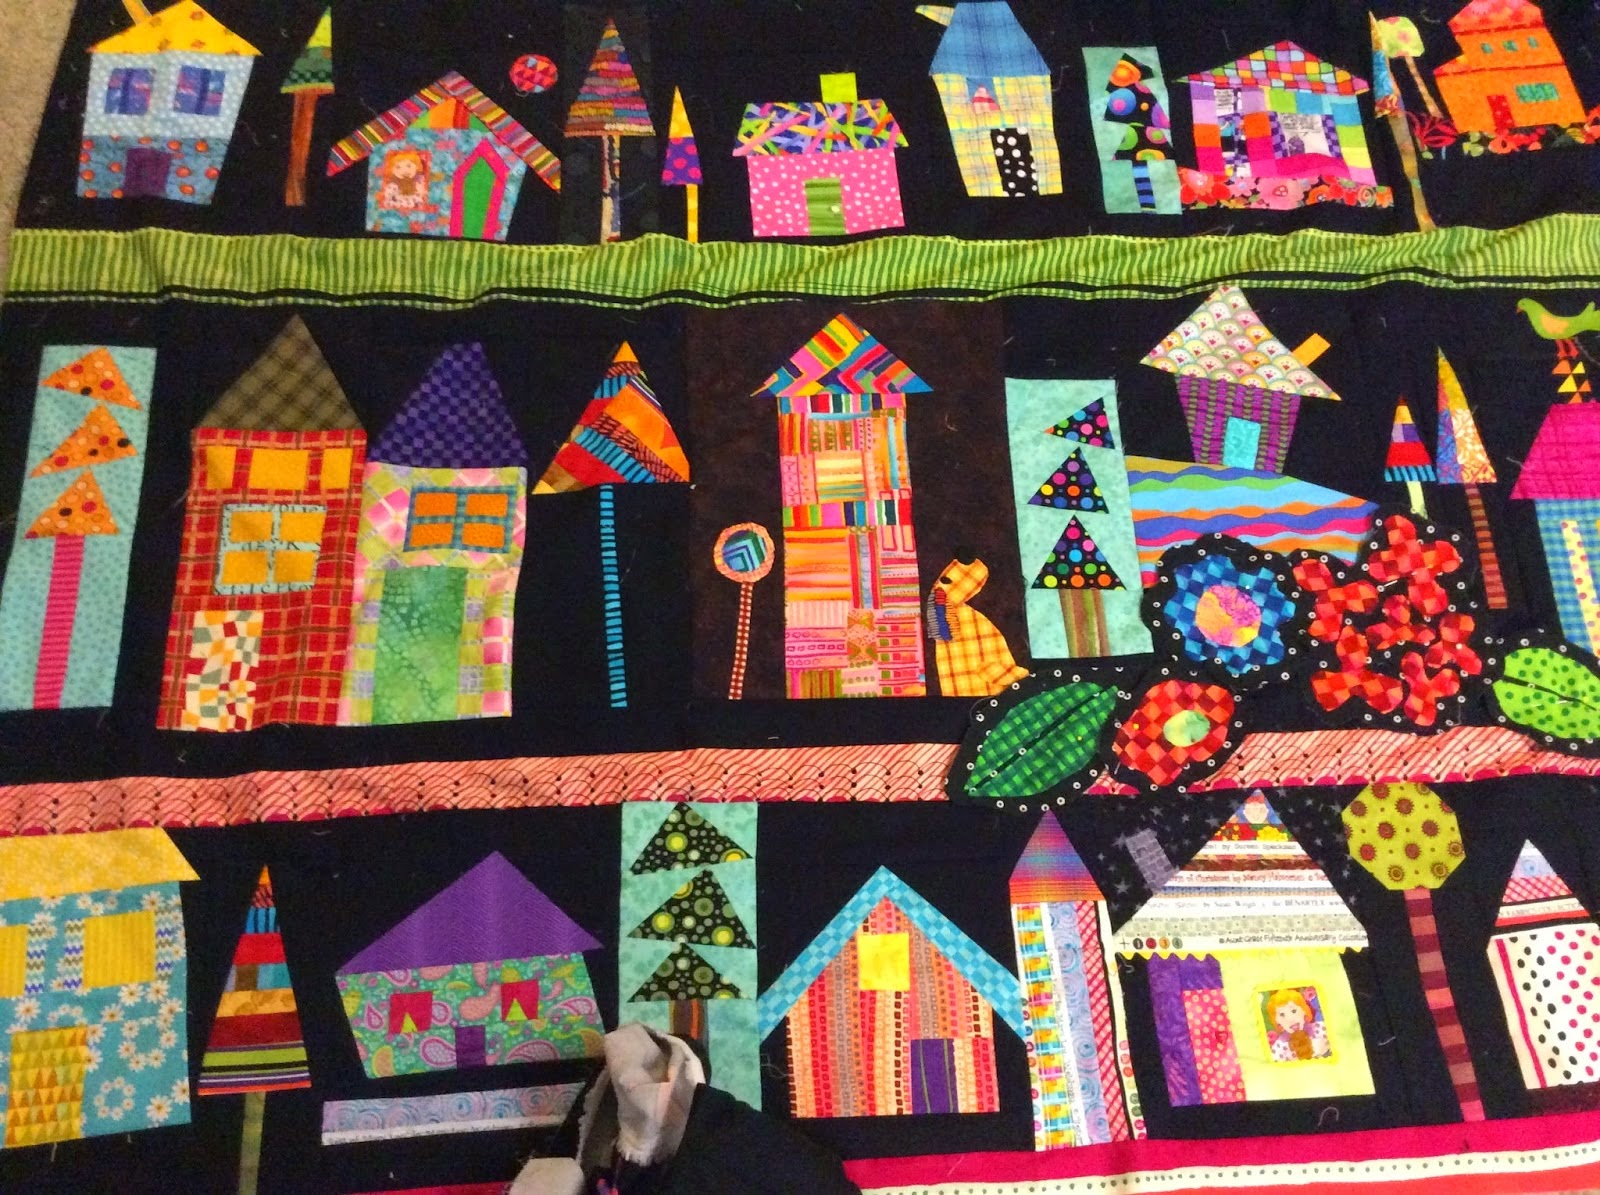 House quilt is done and quilted with fun details and whimsical things to smile at